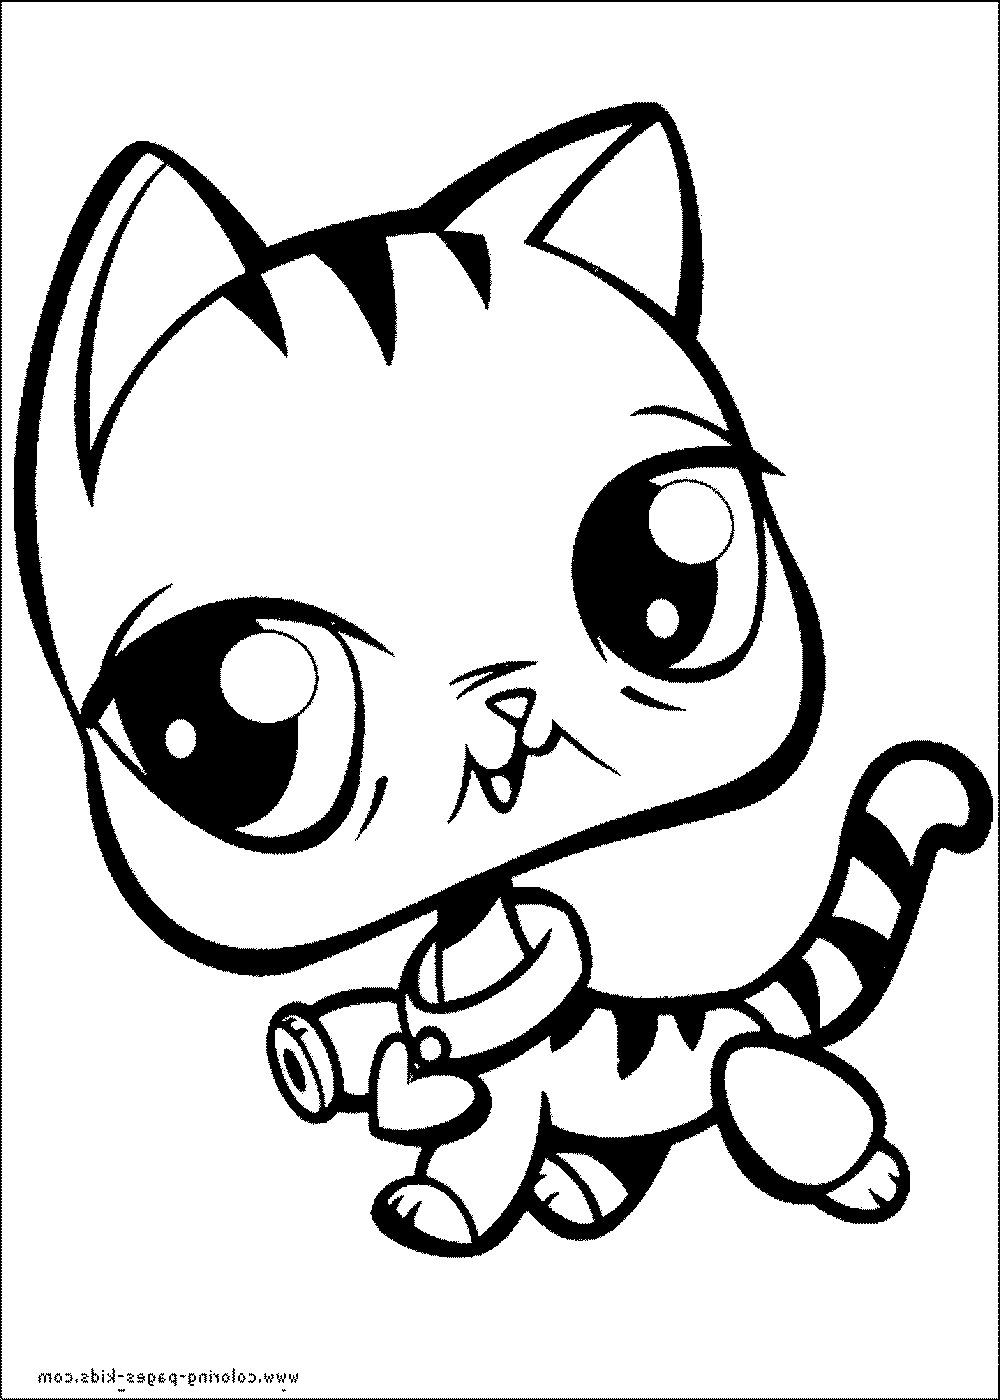 littlest-pet-shop-coloring-page | | BestAppsForKids.com